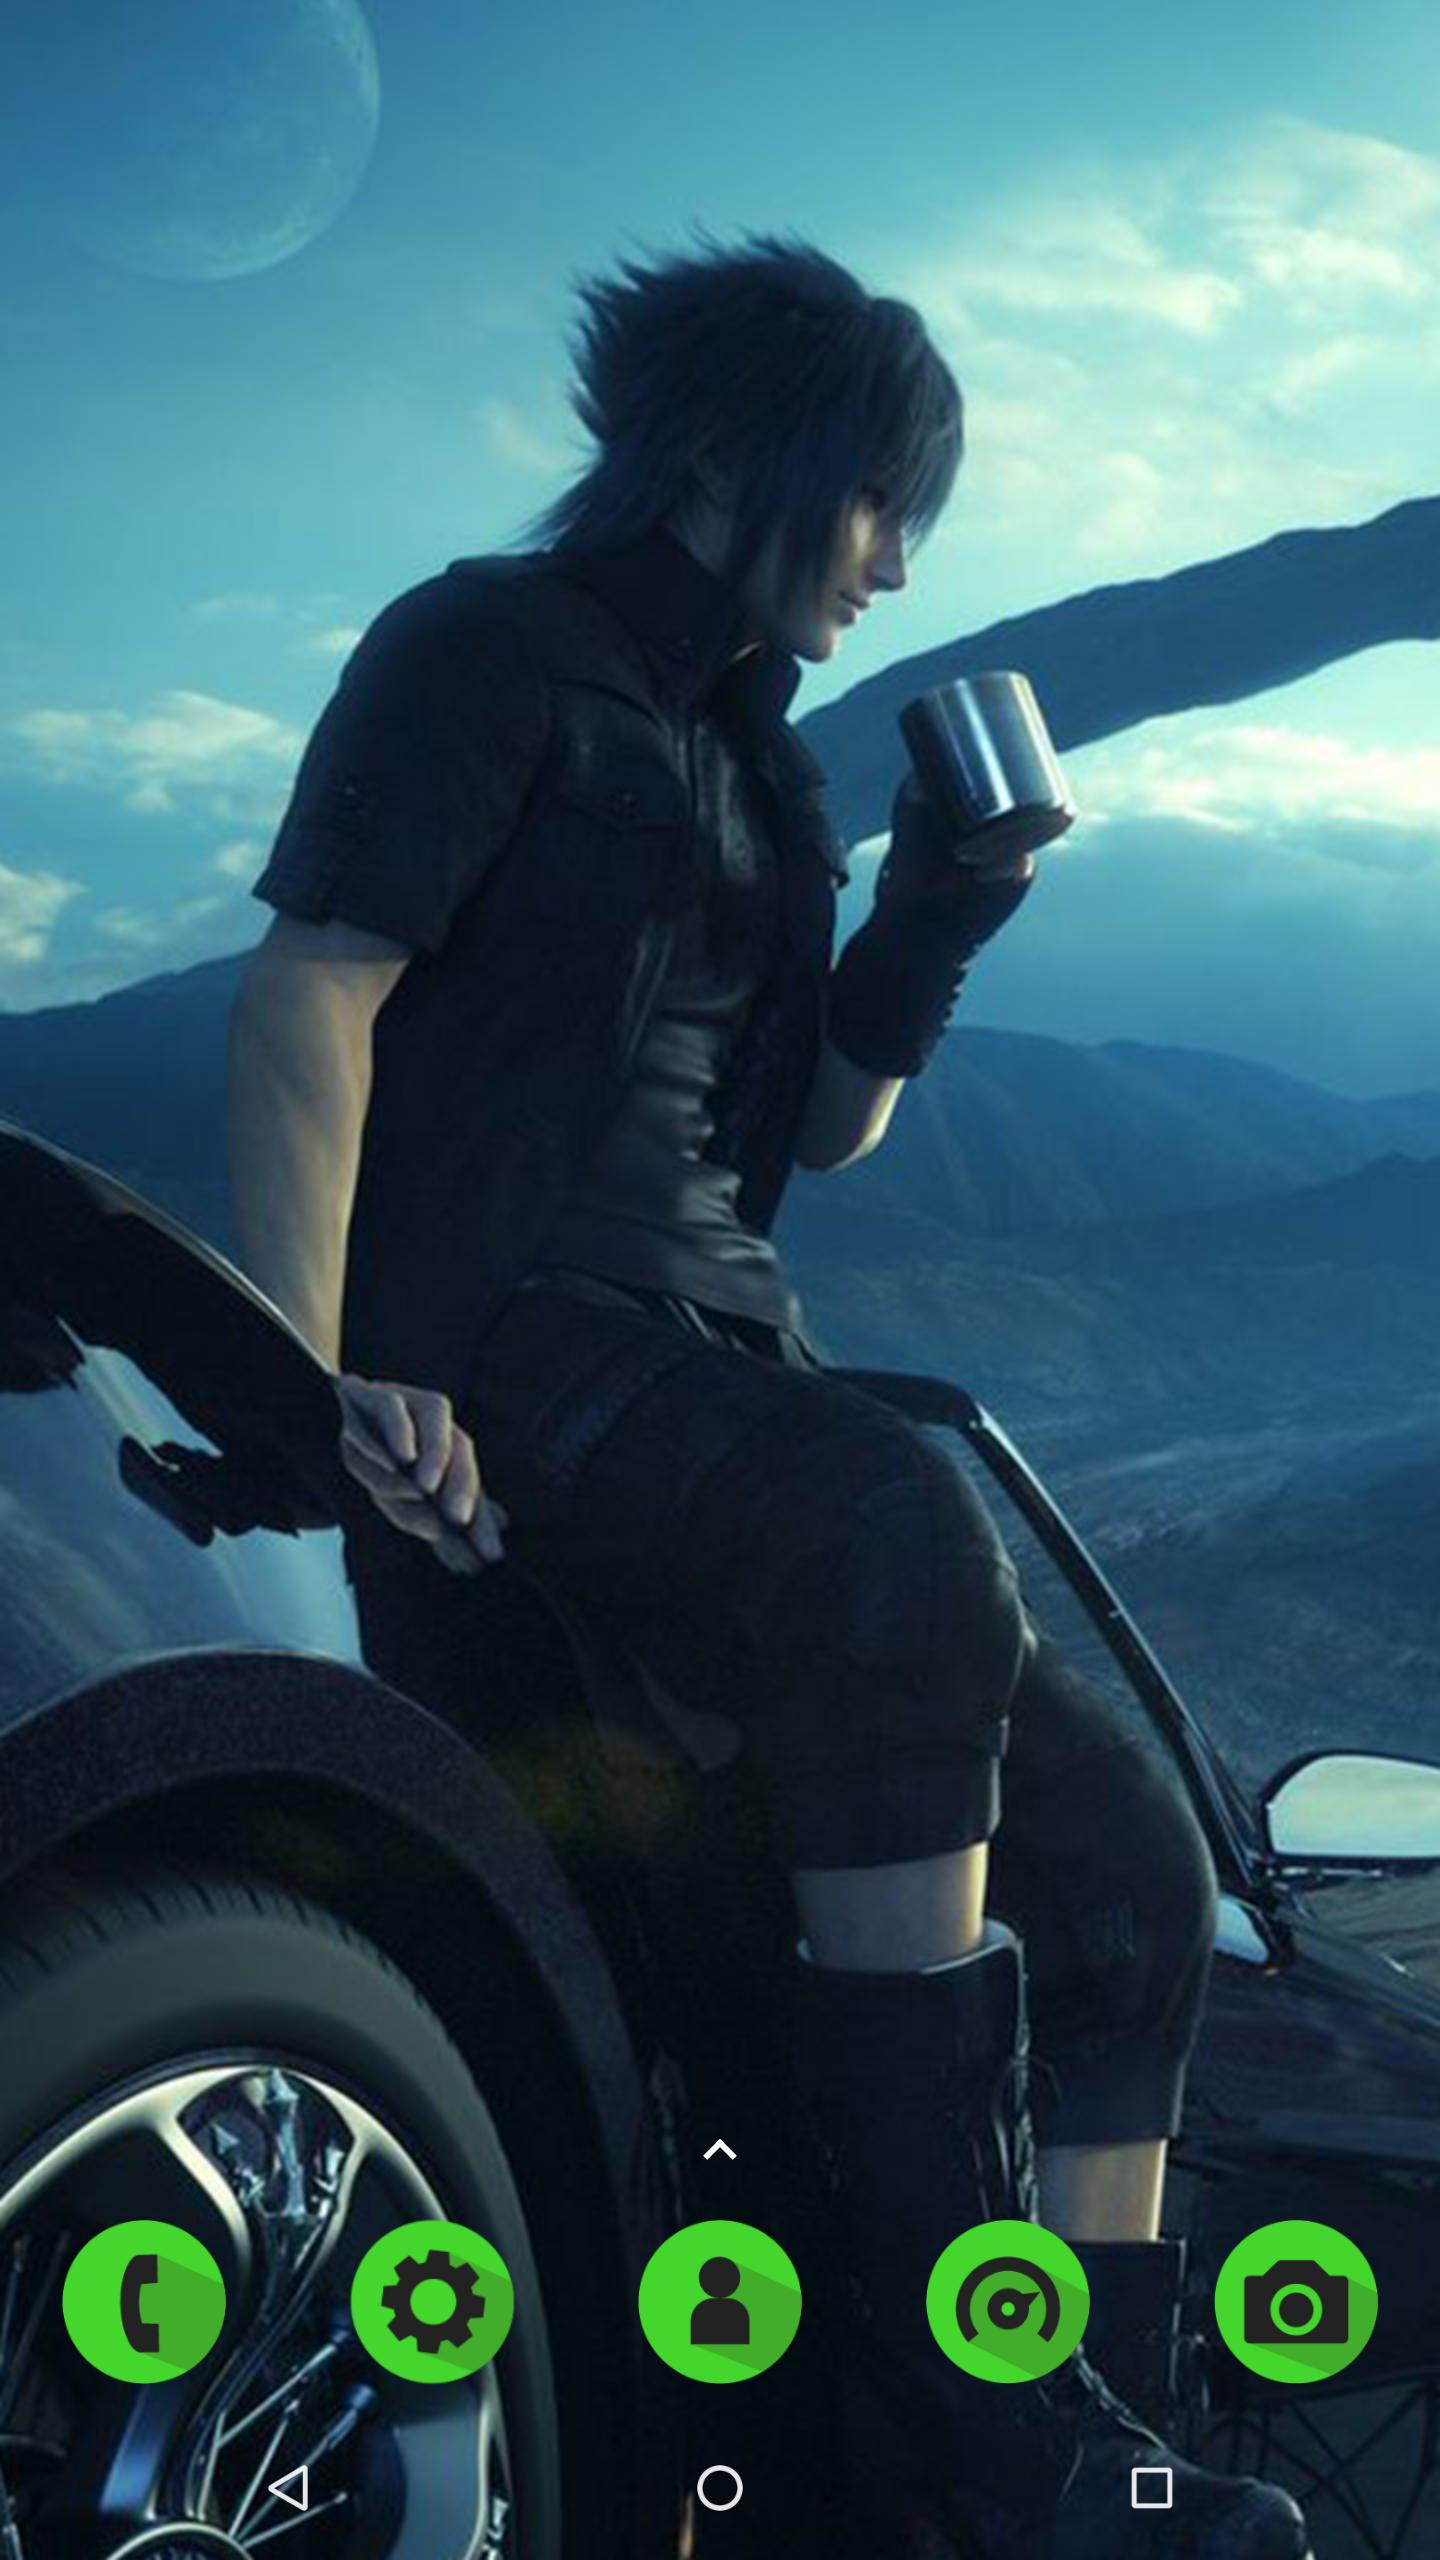 Final Fantasy Xv Hd Wallpaper For Android Apk Download